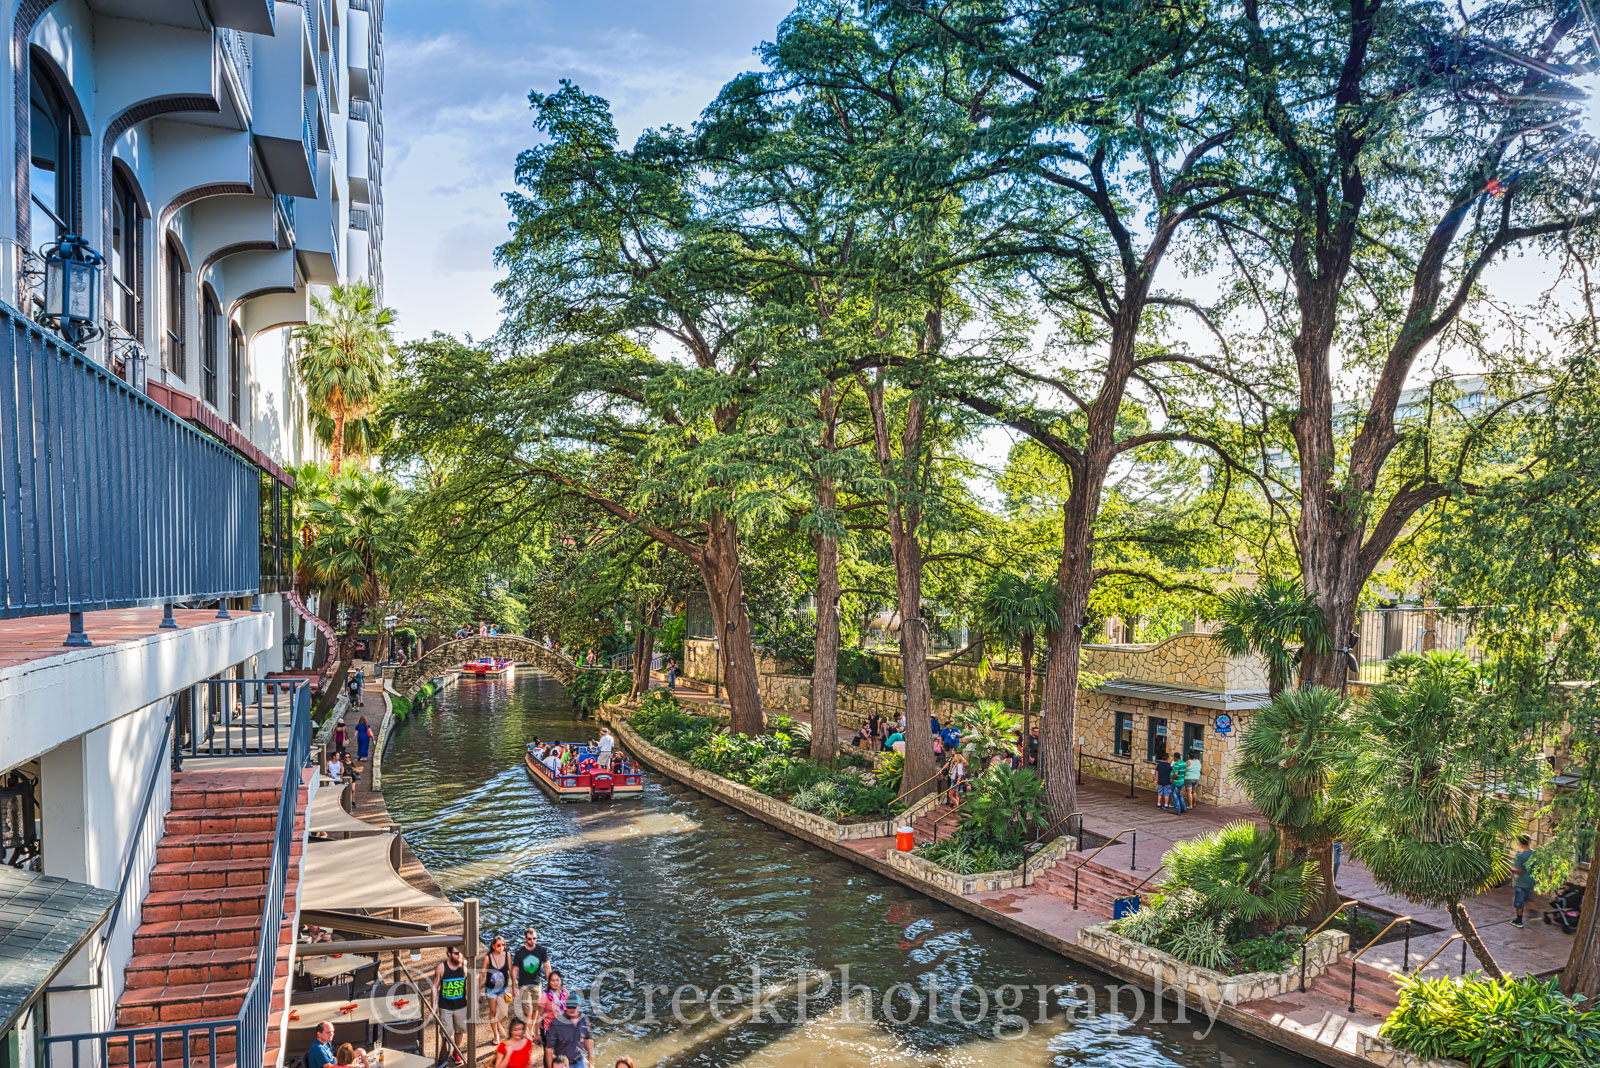 River, River Boat, River Walk, Riverwalk, San Antonio, San Antonio Texas, San Antonio river walk, San Antonio stock photos, boat, photos from texas, photos of san antonio river walk, pictures of san a, photo